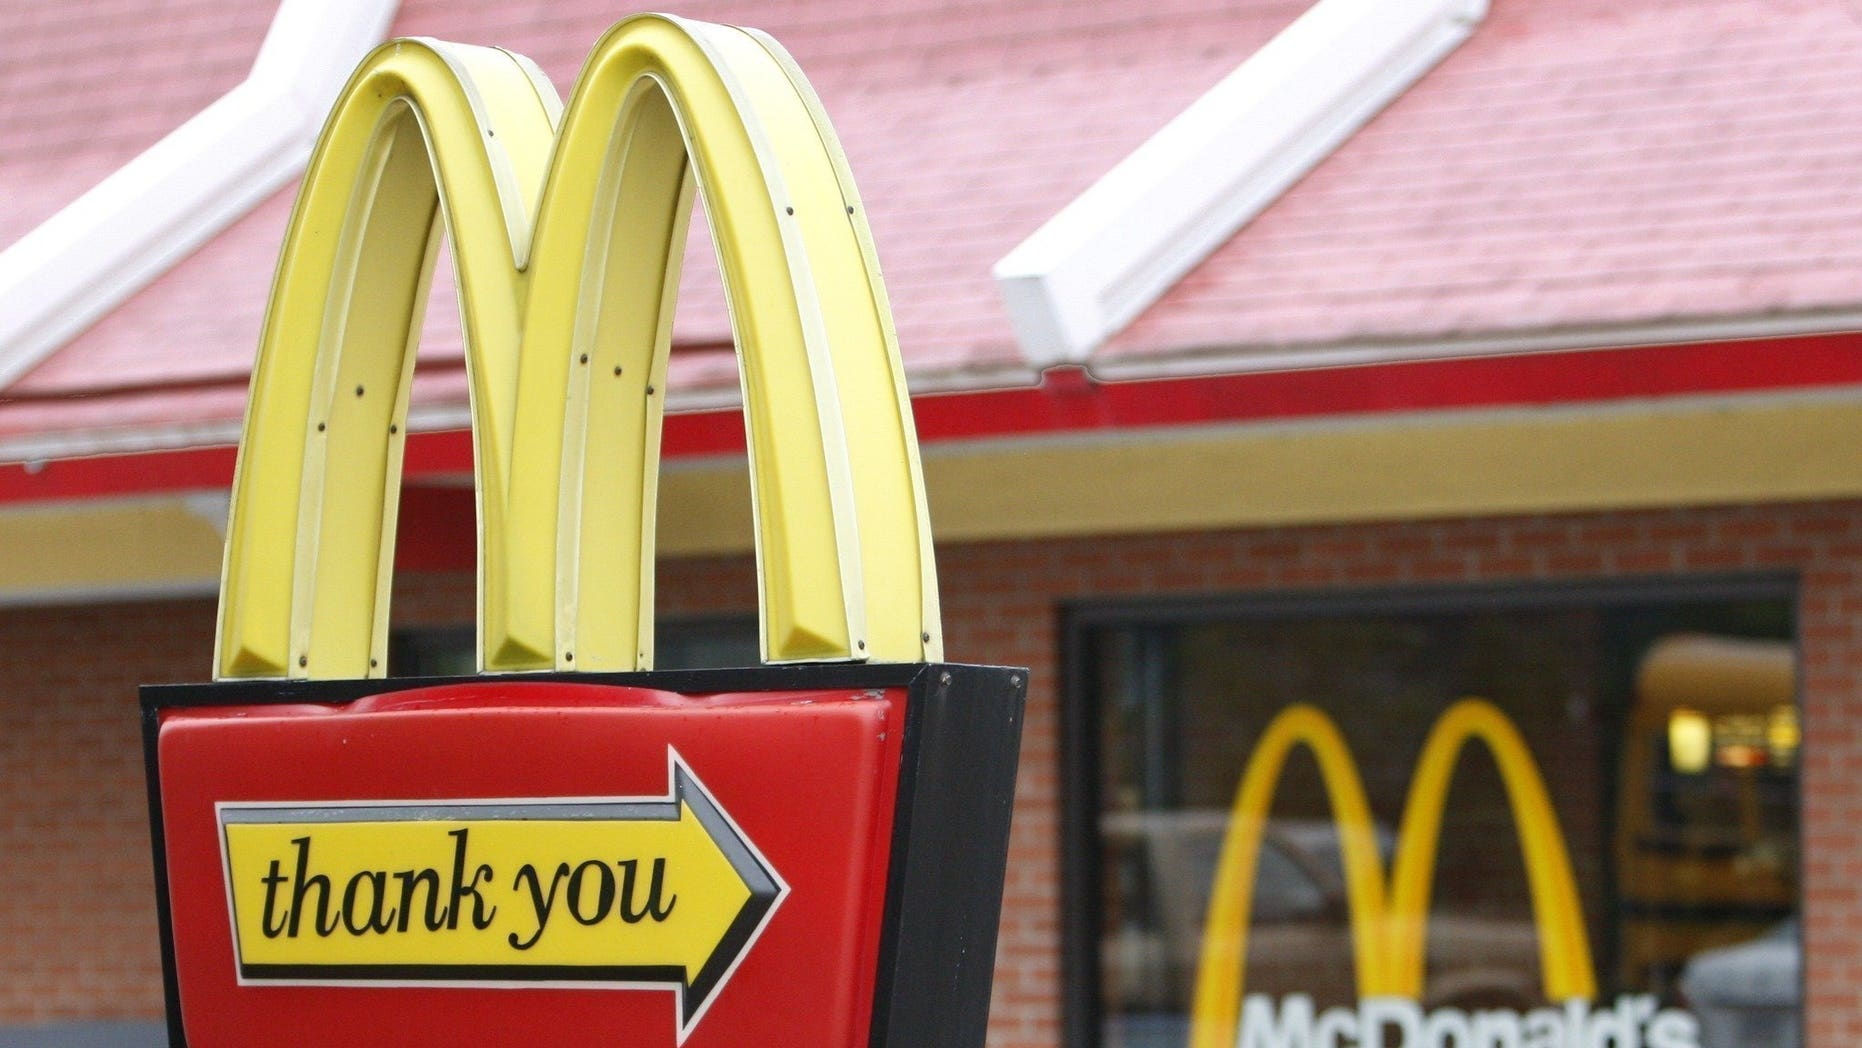 McDonald's customers spread Christmas cheer by paying for the customer behind them at a drive-thru window in Fla.